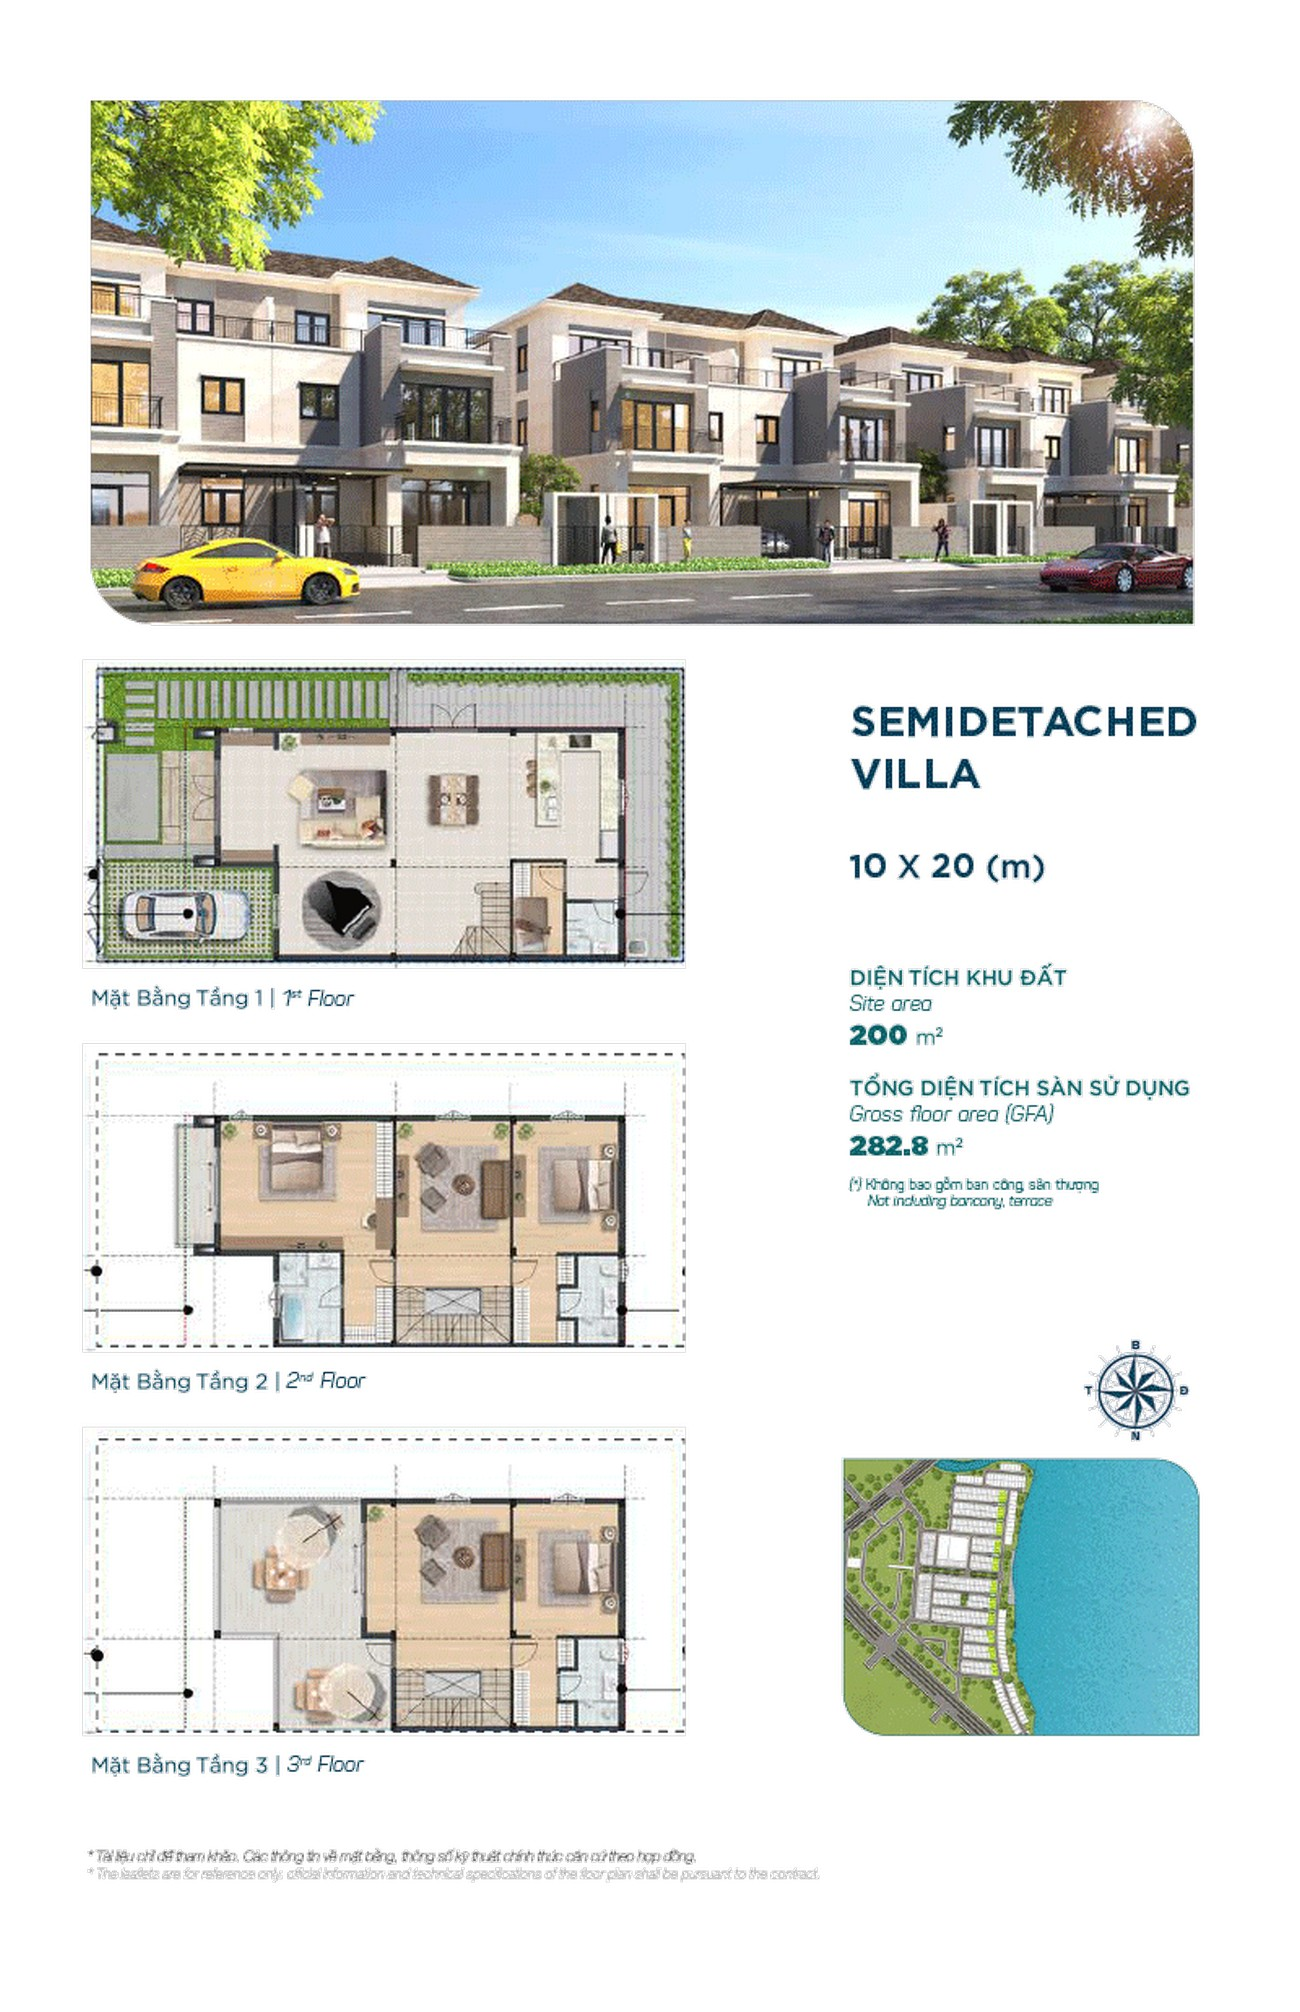 Semidetached villa 10x20m - Dự án Aqua City The Elite